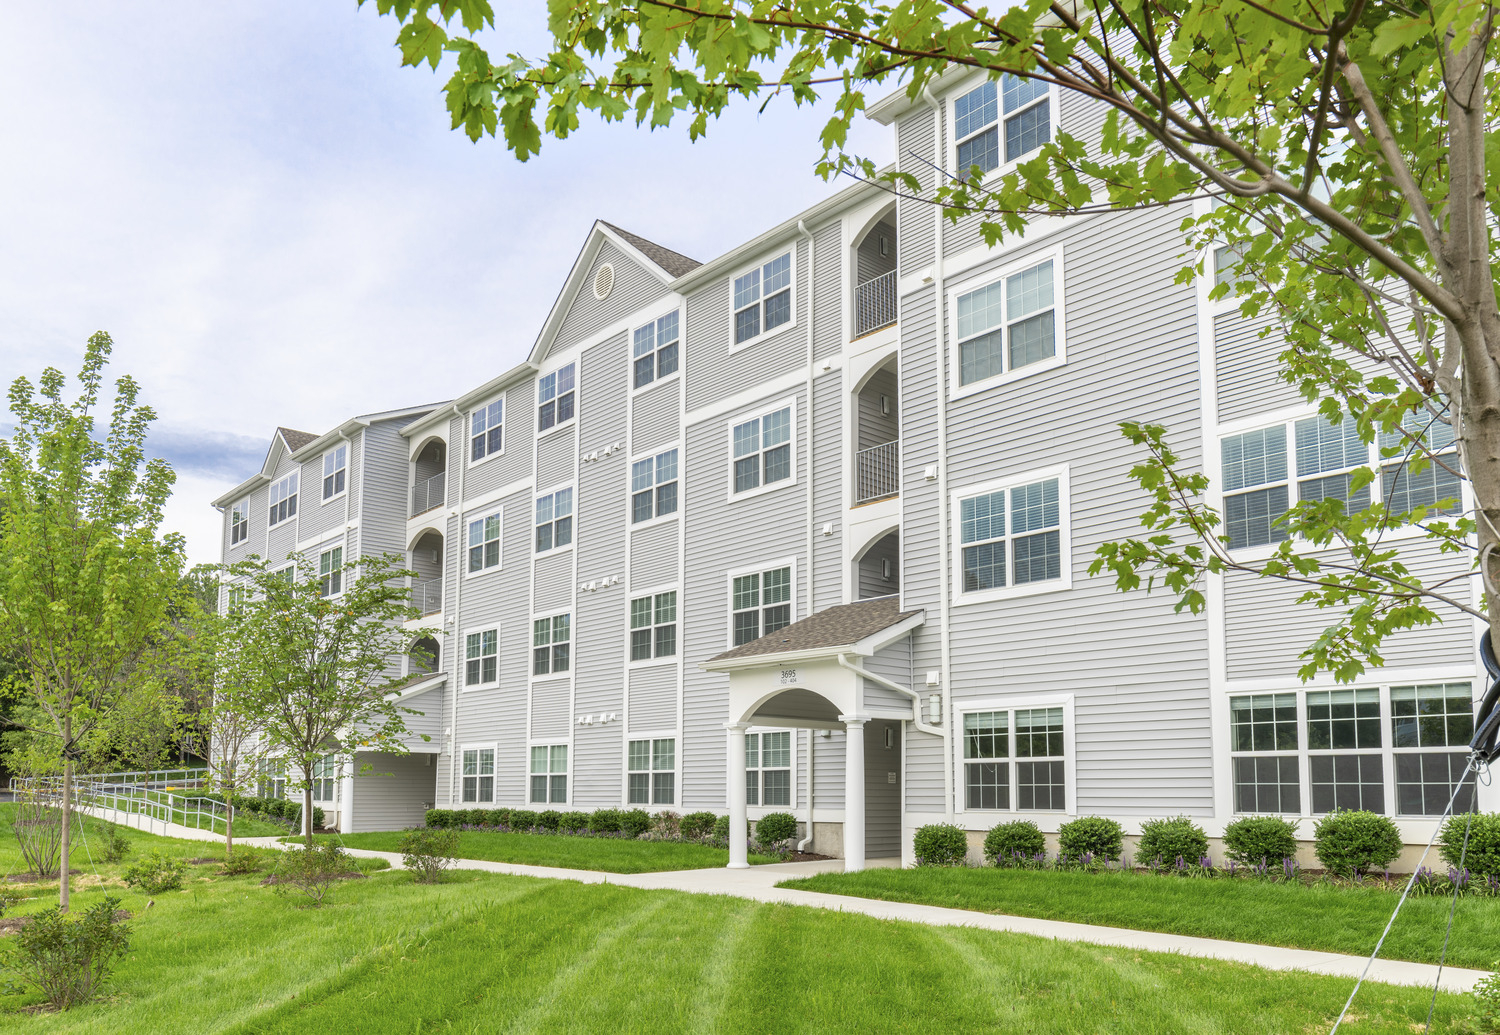 CBG builds Dominion Middle Ridge, a 28-Unit Infill Apartment Building with Recreation Court and Dog Park in Woodbridge, VA - Image #1